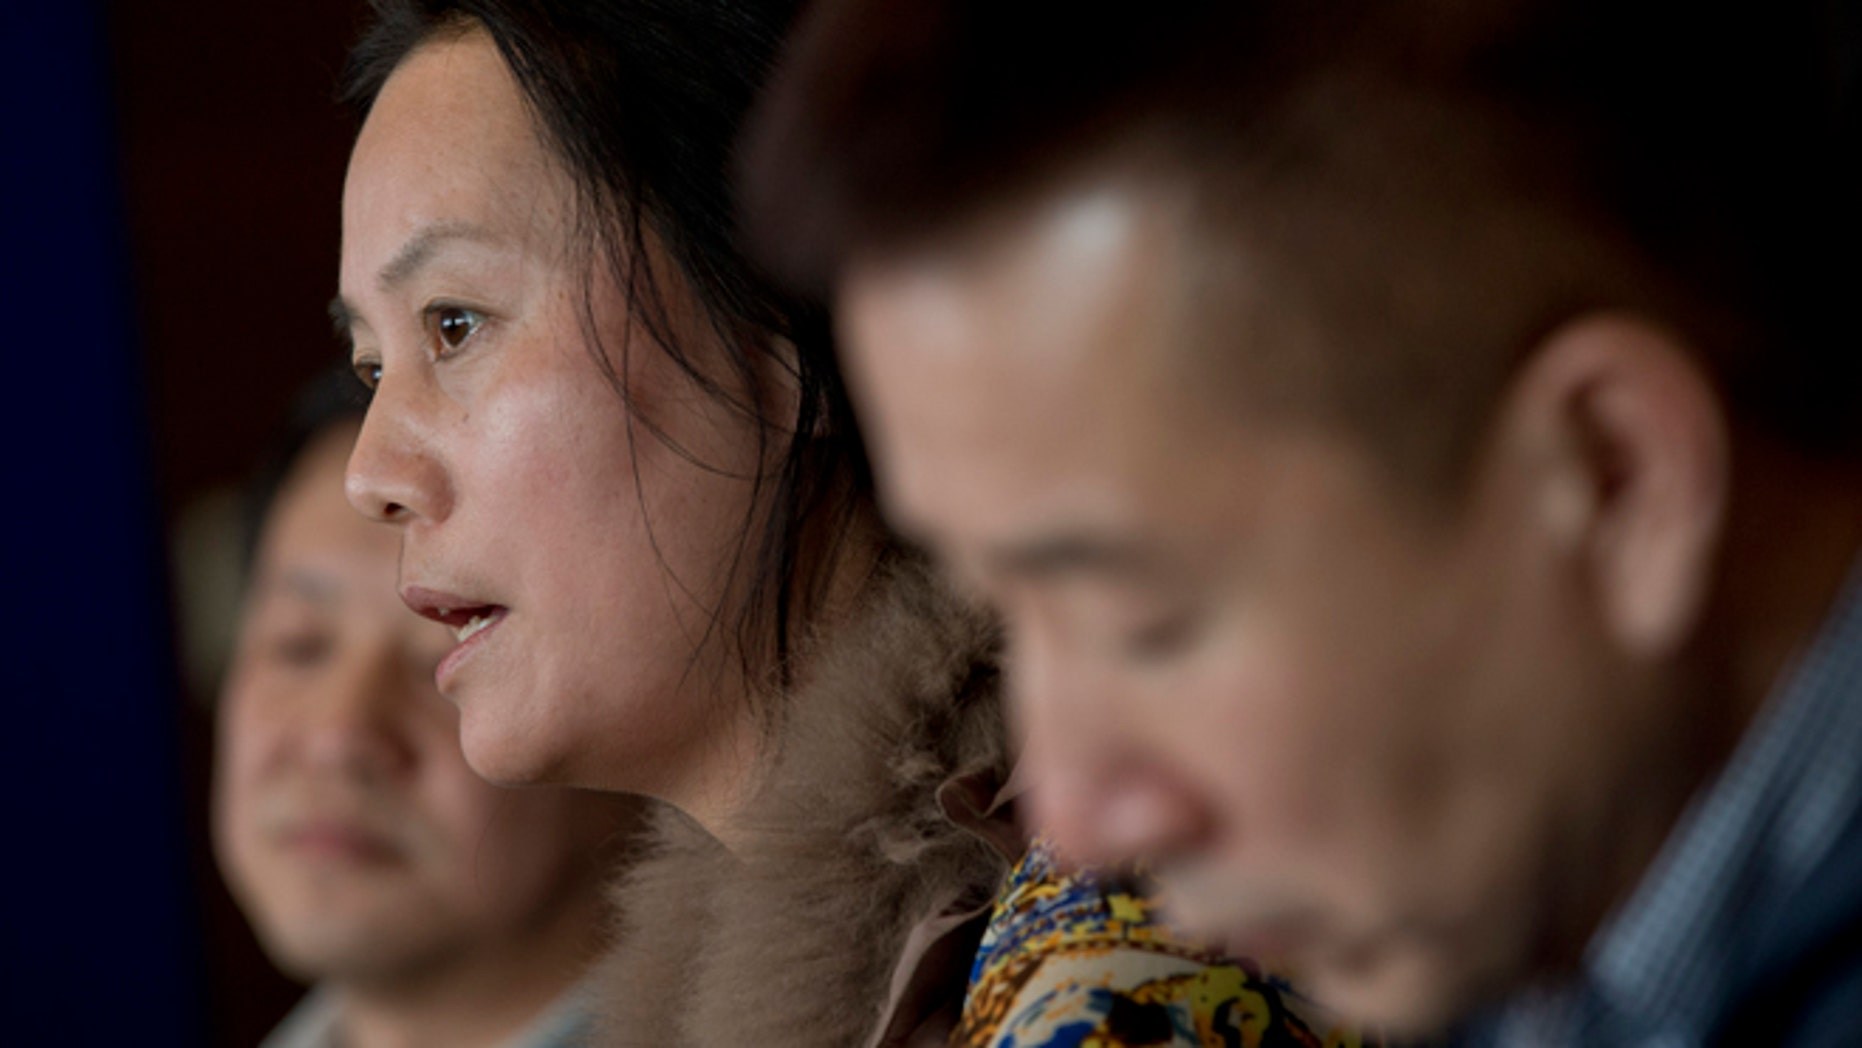 March 4, 2014: Chinese Investor applicant Duan Wuhong, center, speaks next to Rong Bing, left, and Du Jun, right, during a press conference of Immigrant Investors to Canada Unite and Demand Justice! held in Beijing, China.